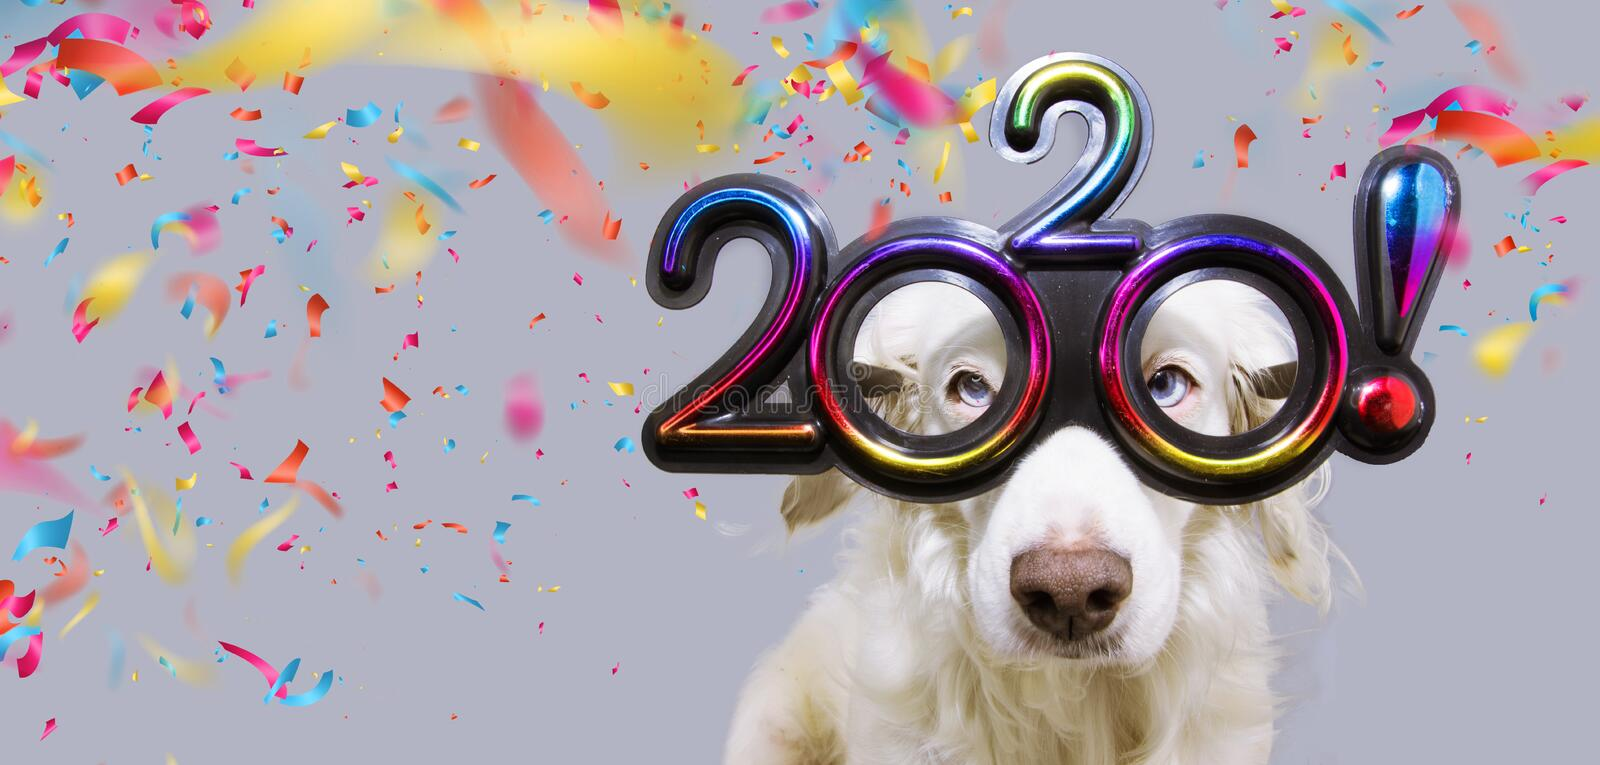 New year dog pet  that looks like goat wearing colorful 2020 text glasses.  on white background with confetti falling royalty free stock image